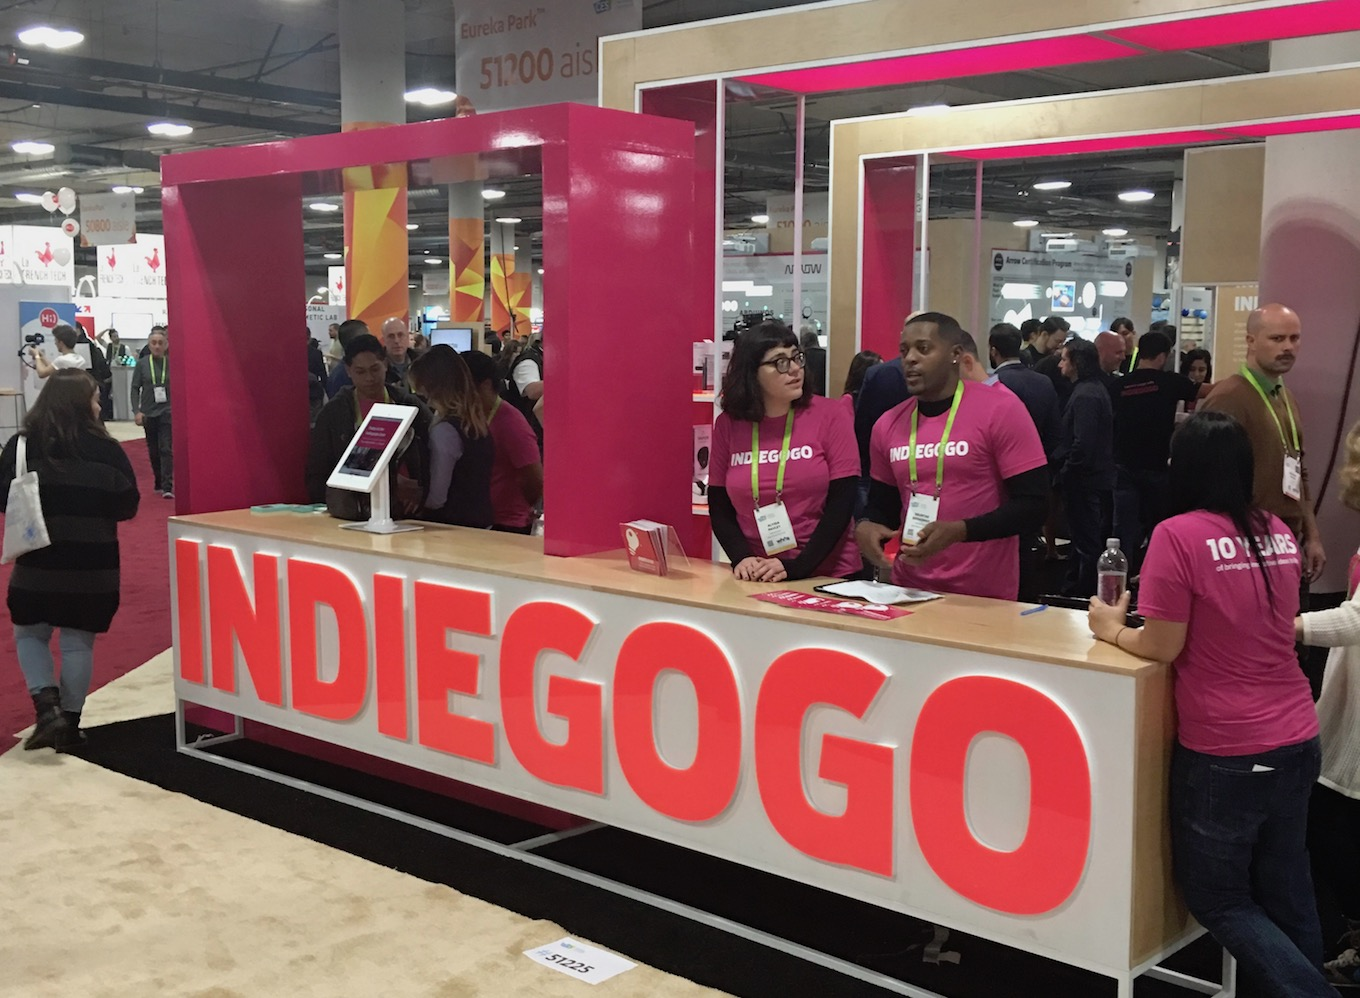 indiegogo at ces 2018 crowdfunding booth